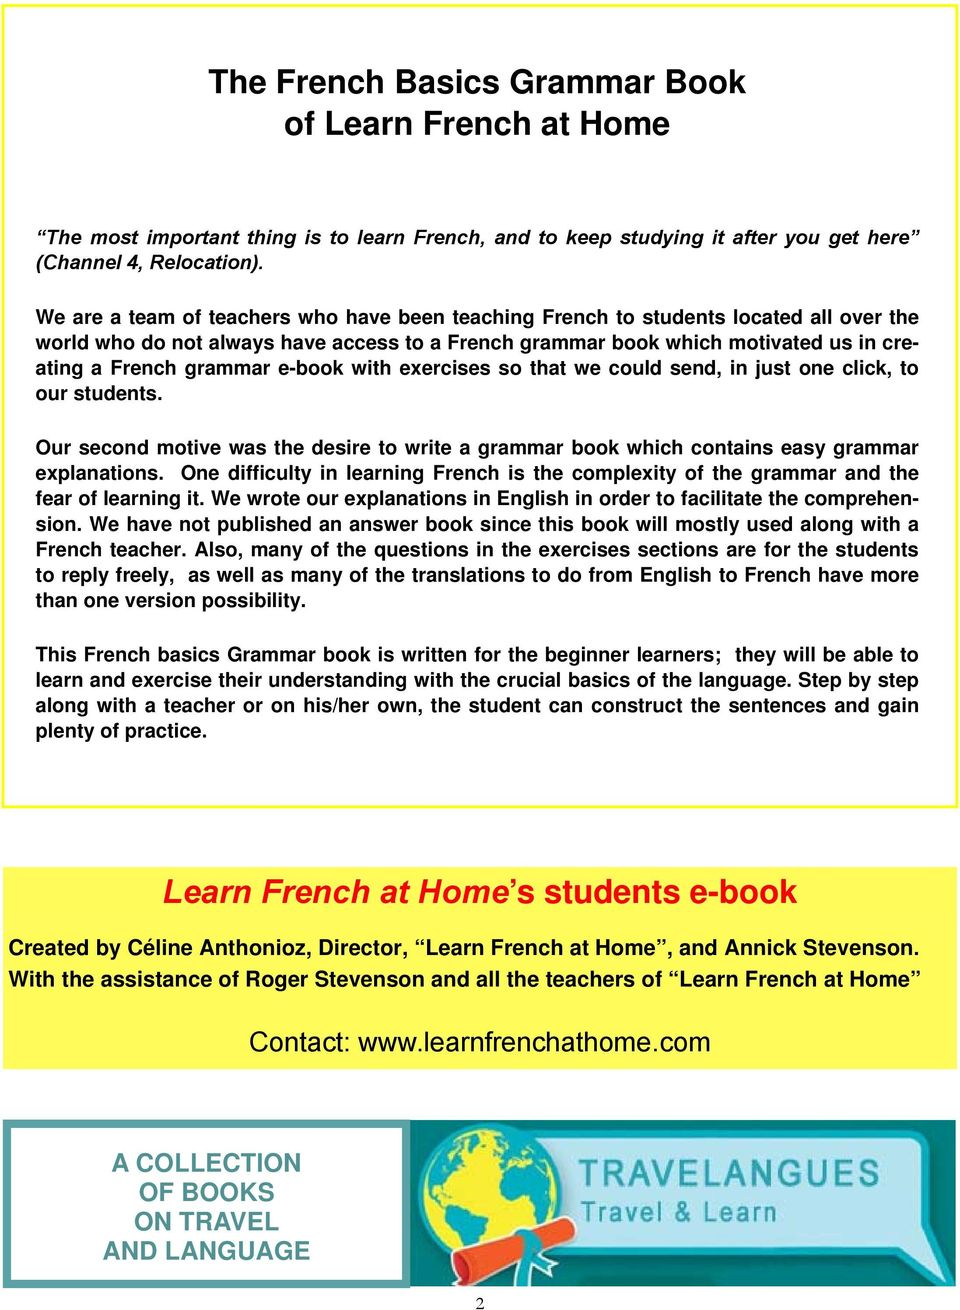 e-book with exercises so that we could send, in just one click, to our students. Our second motive was the desire to write a grammar book which contains easy grammar explanations.